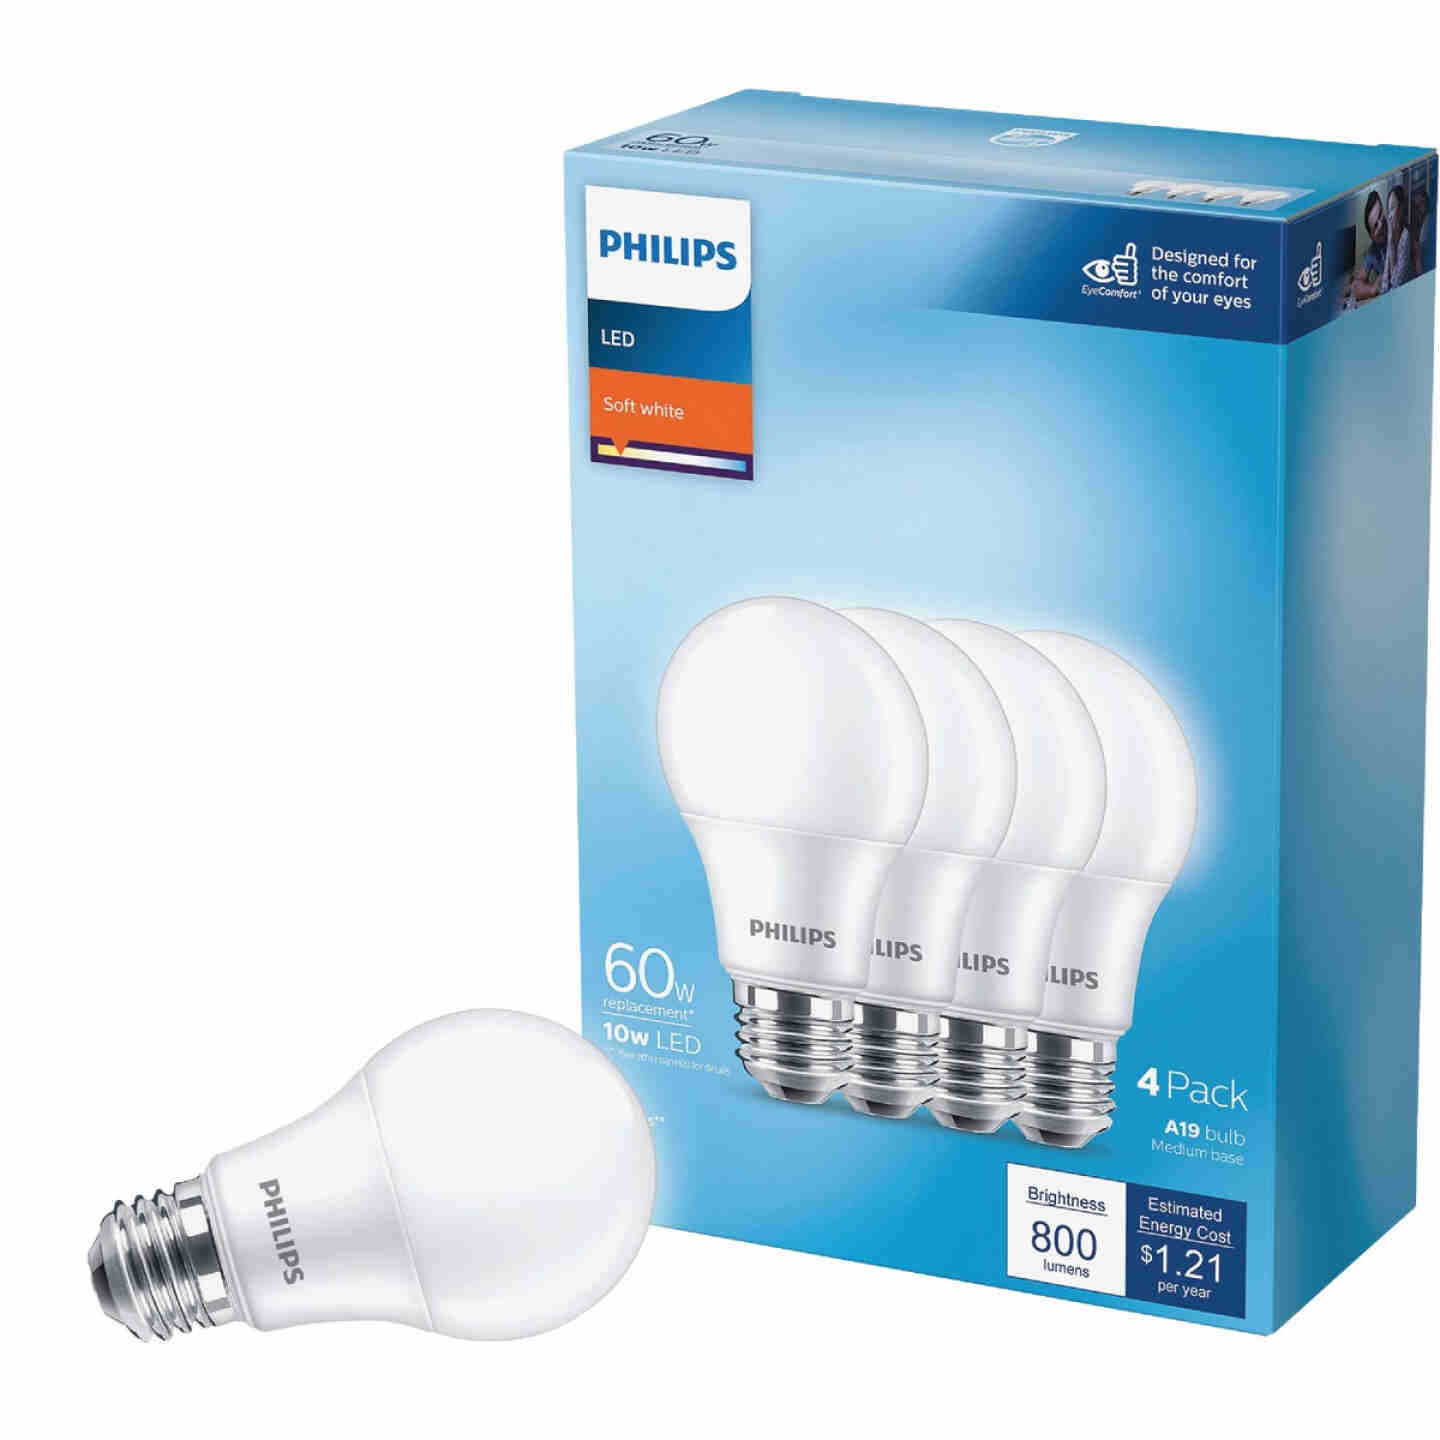 Philips 60W Equivalent Soft White A19 Medium LED Light Bulb (4-Pack) Image 1